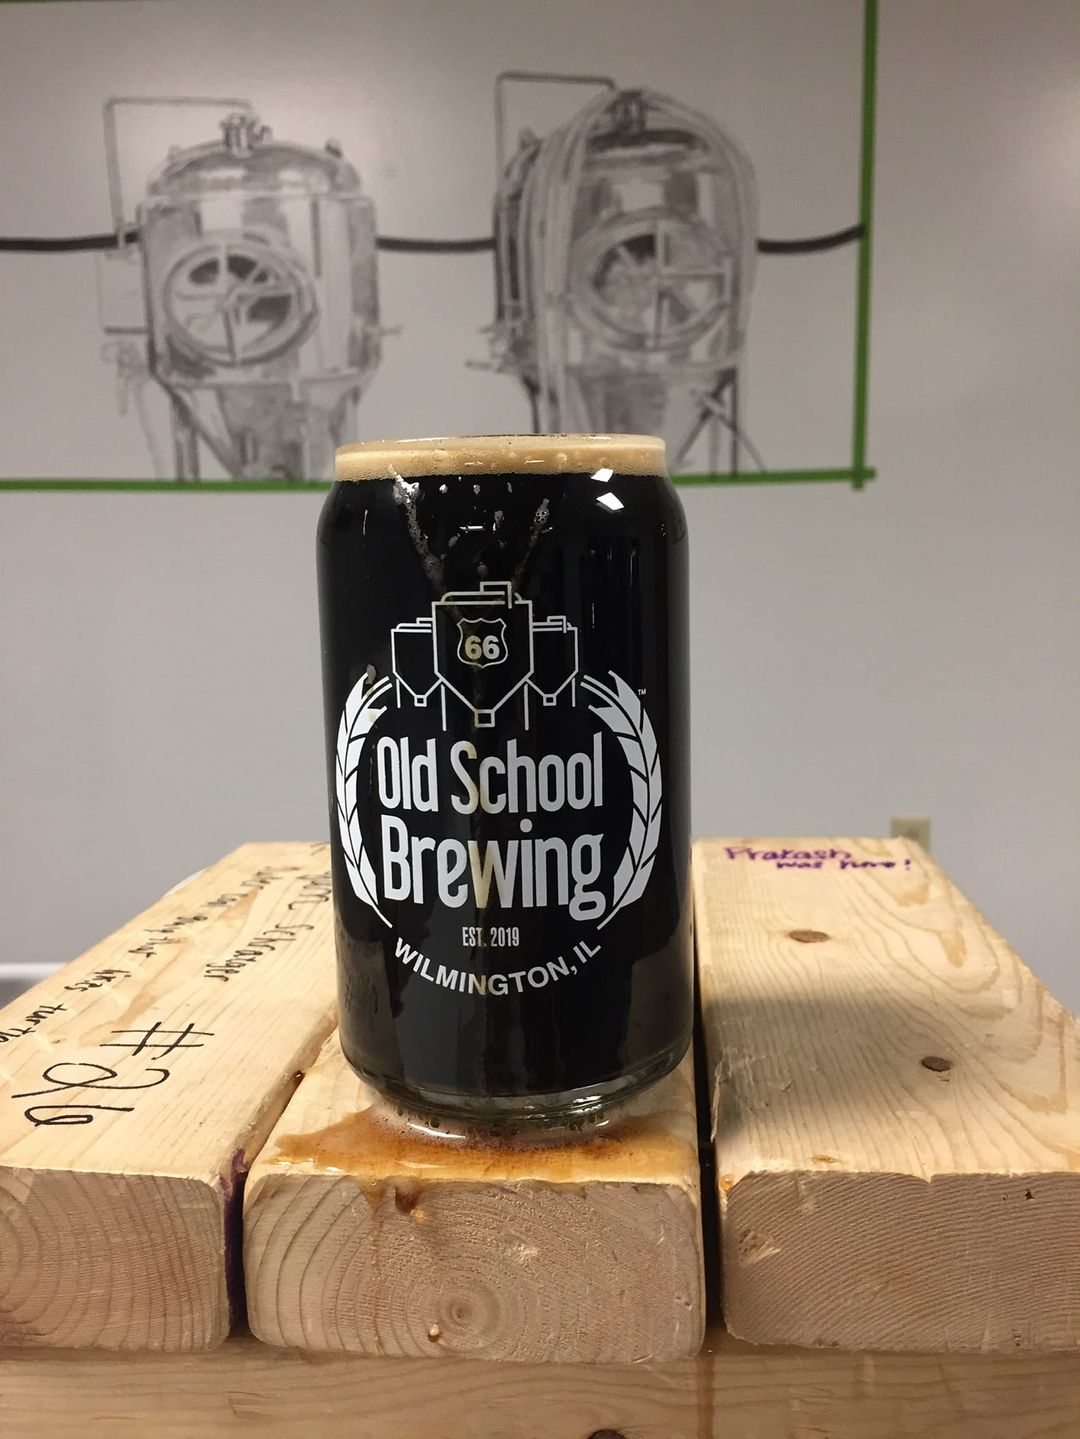 Push Your Luck by Rt66 Old School Brewing